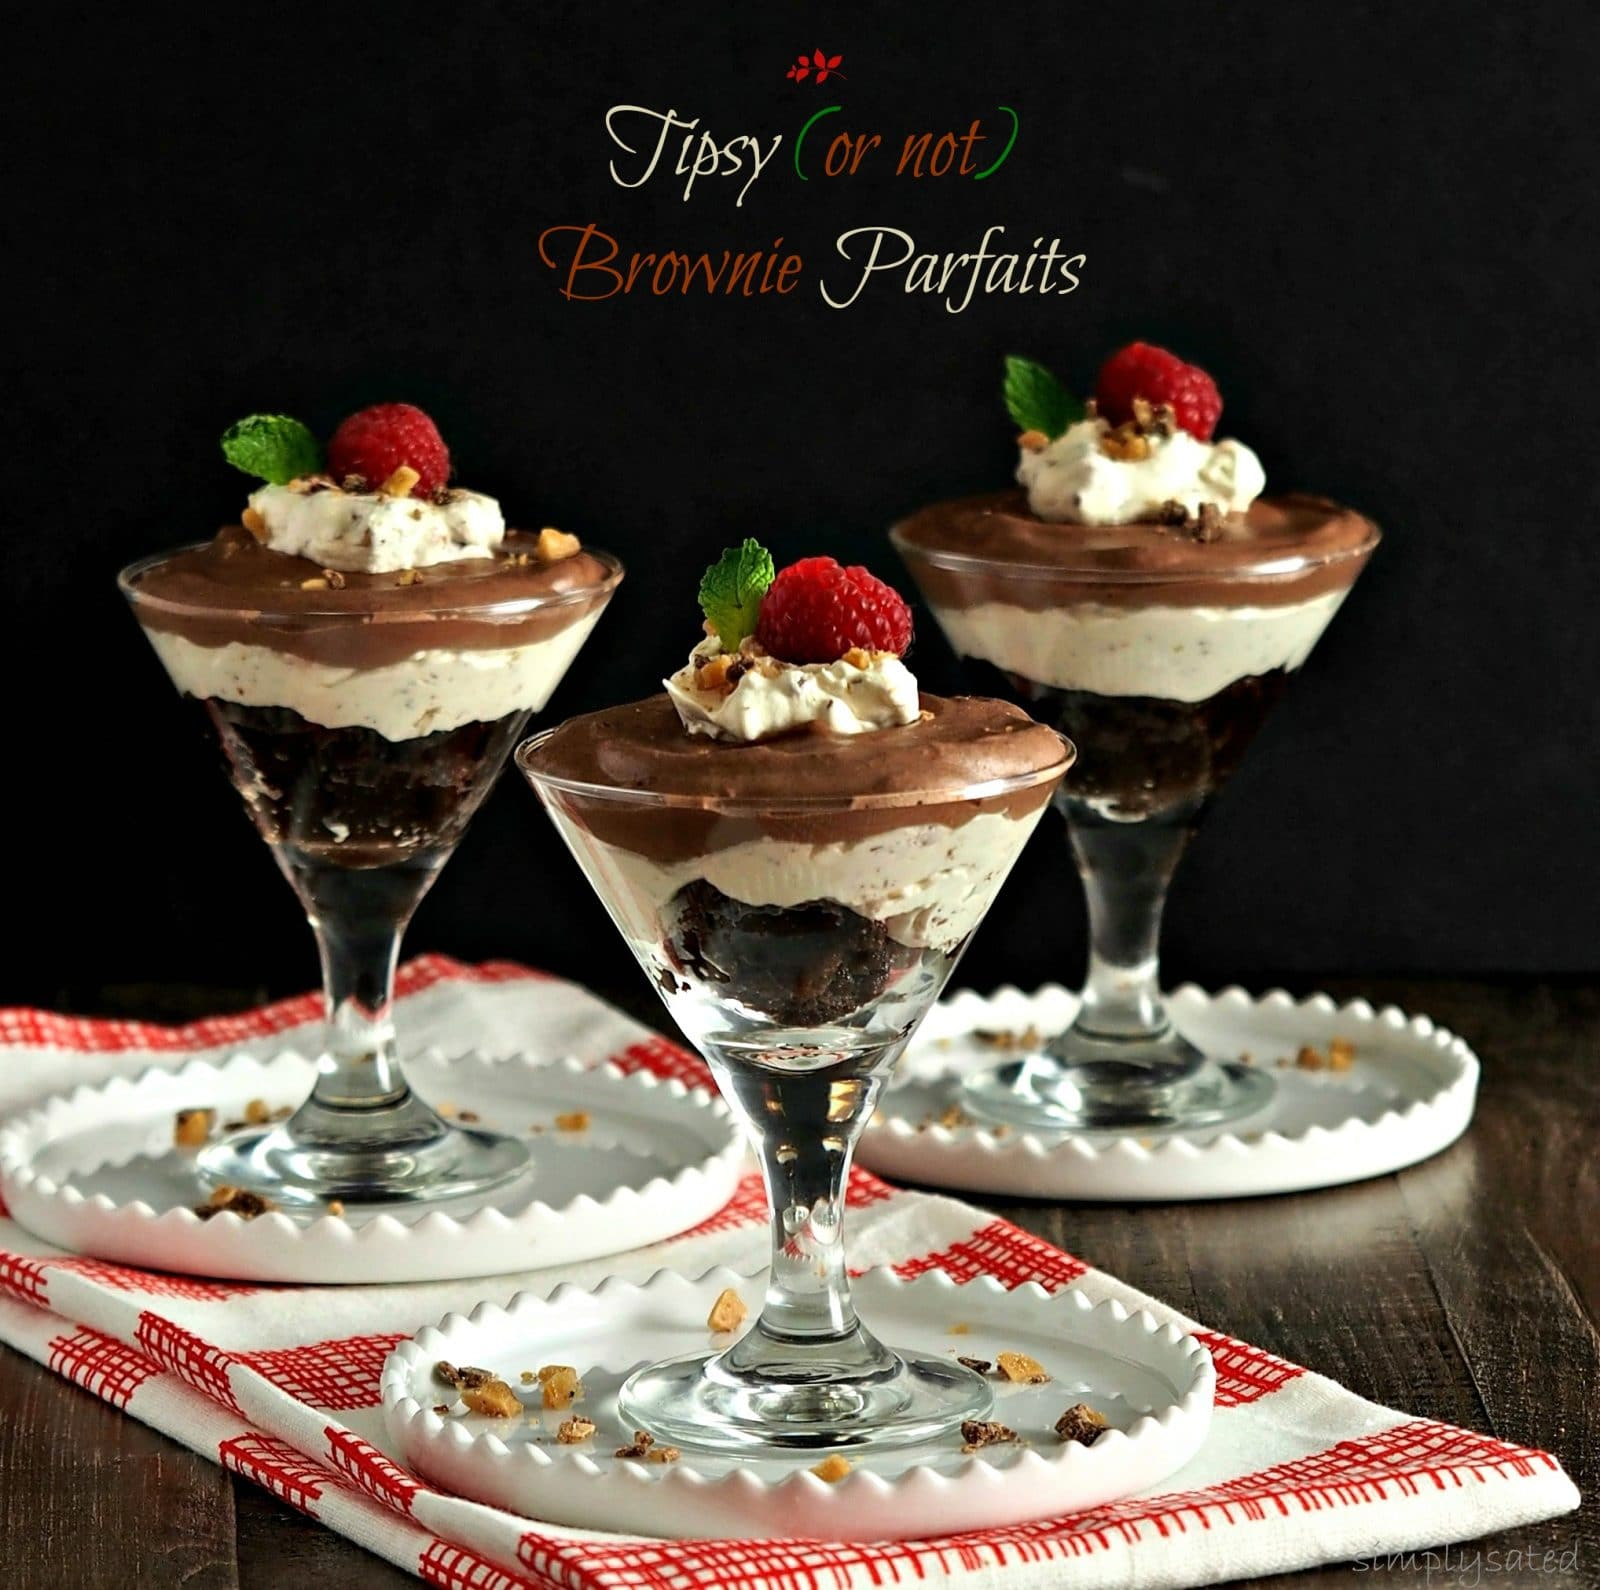 Tipsy (or not) Brownie Parfaits - Simply Sated